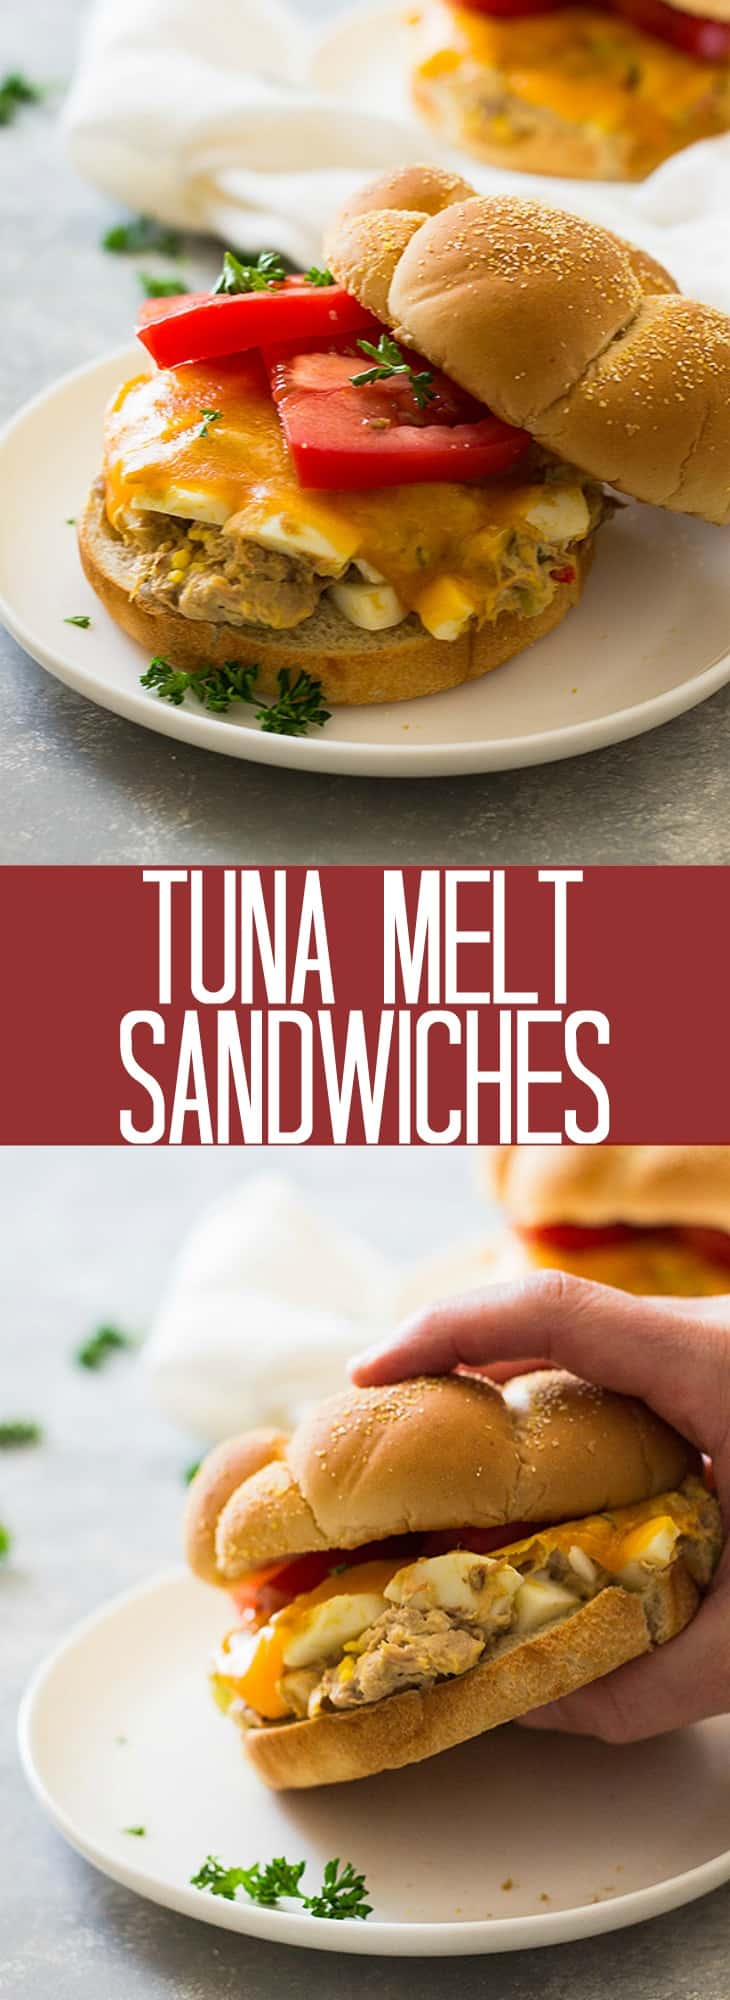 These Tuna Melt Sandwiches are anything but boring. Filled with boiled egg, dill pickle, and melted cheese they will quickly become a family favorite!